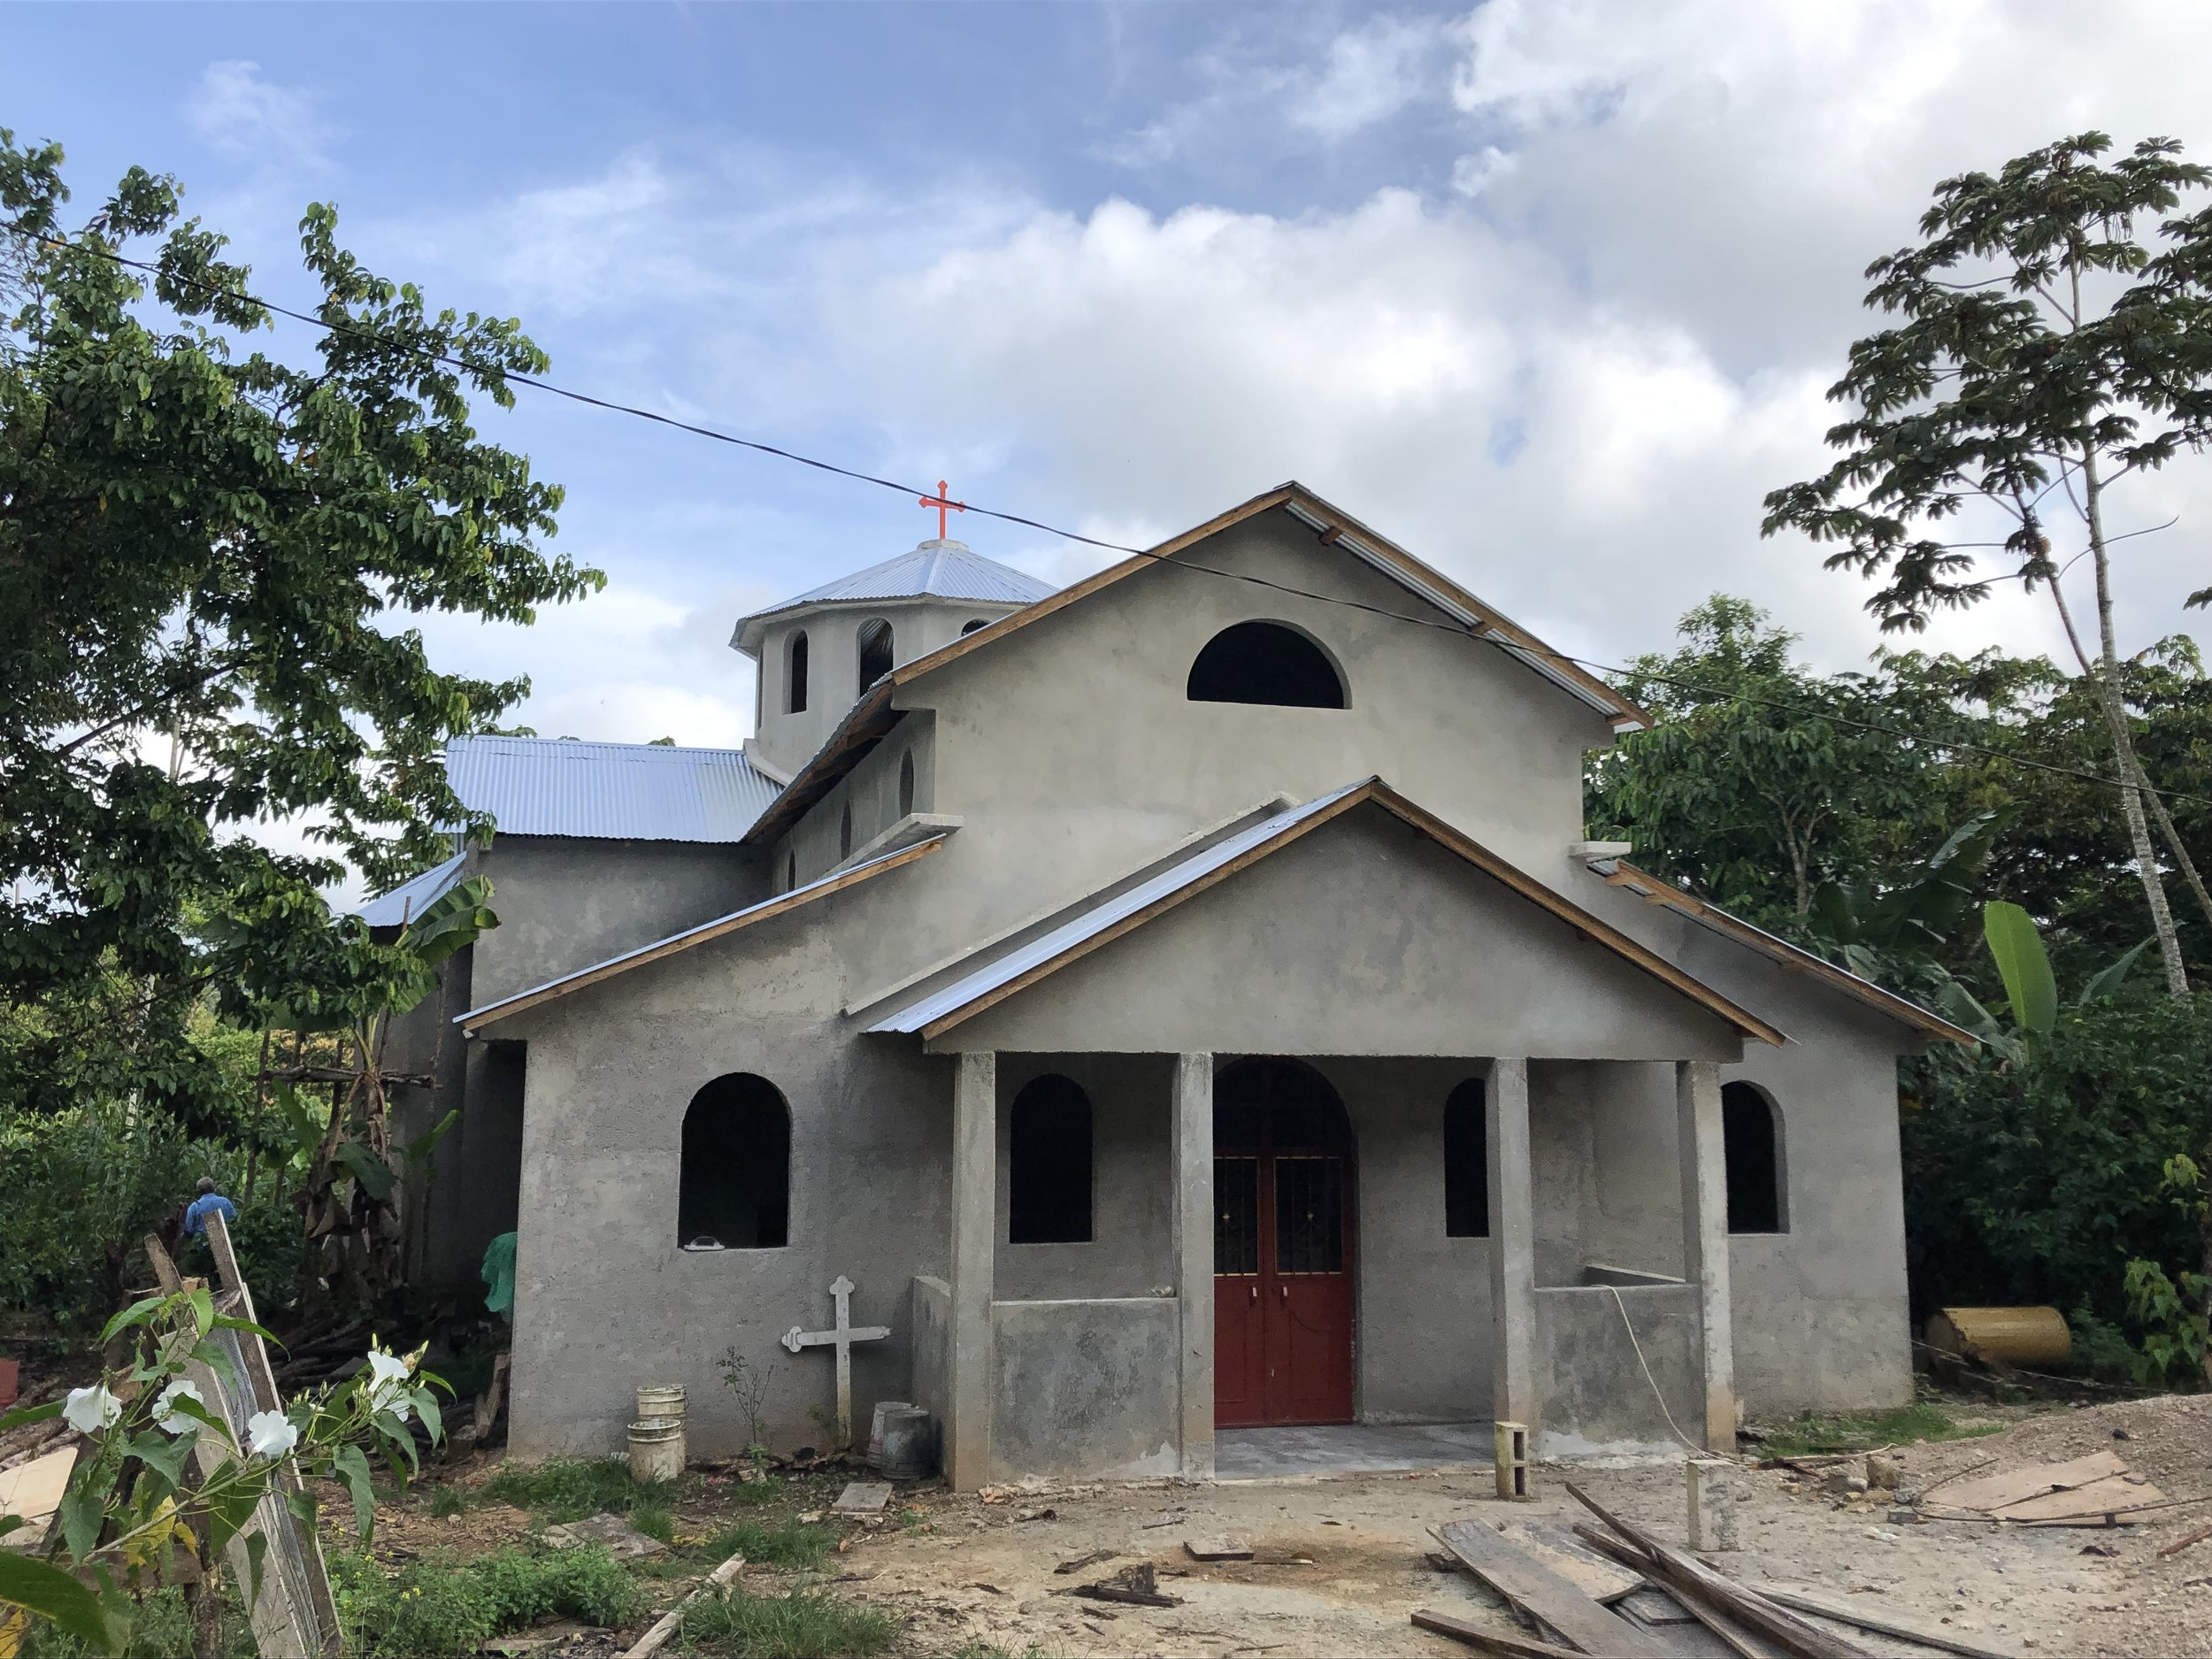 One of the many new Orthodox churches being built, this one is in Santa Rosa in southern Mexico.